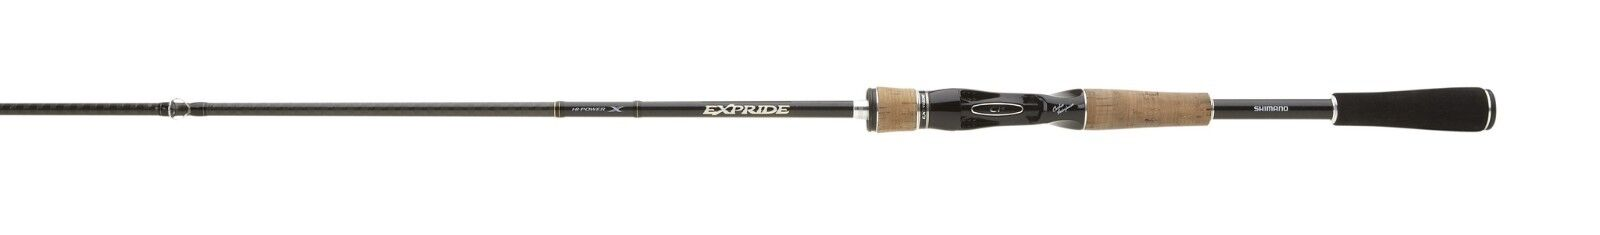 Shimano Expride Series Casting Rods - Tournament Bass, Bass, Bass, Freshwater, Inshore Rods 1af95e